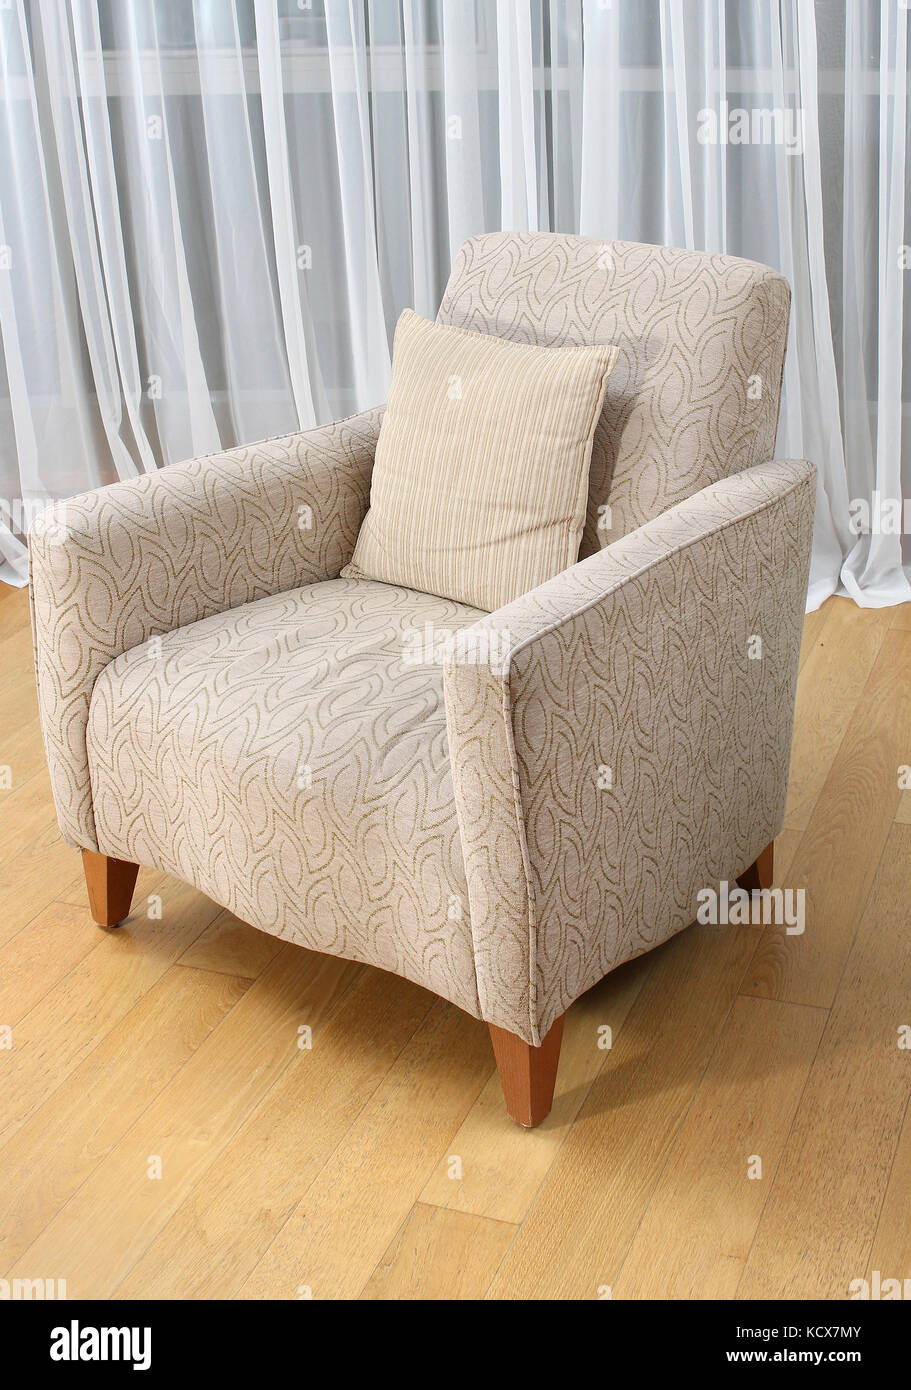 Comfortable armchair with decorative pillow in modern interior - Stock Image